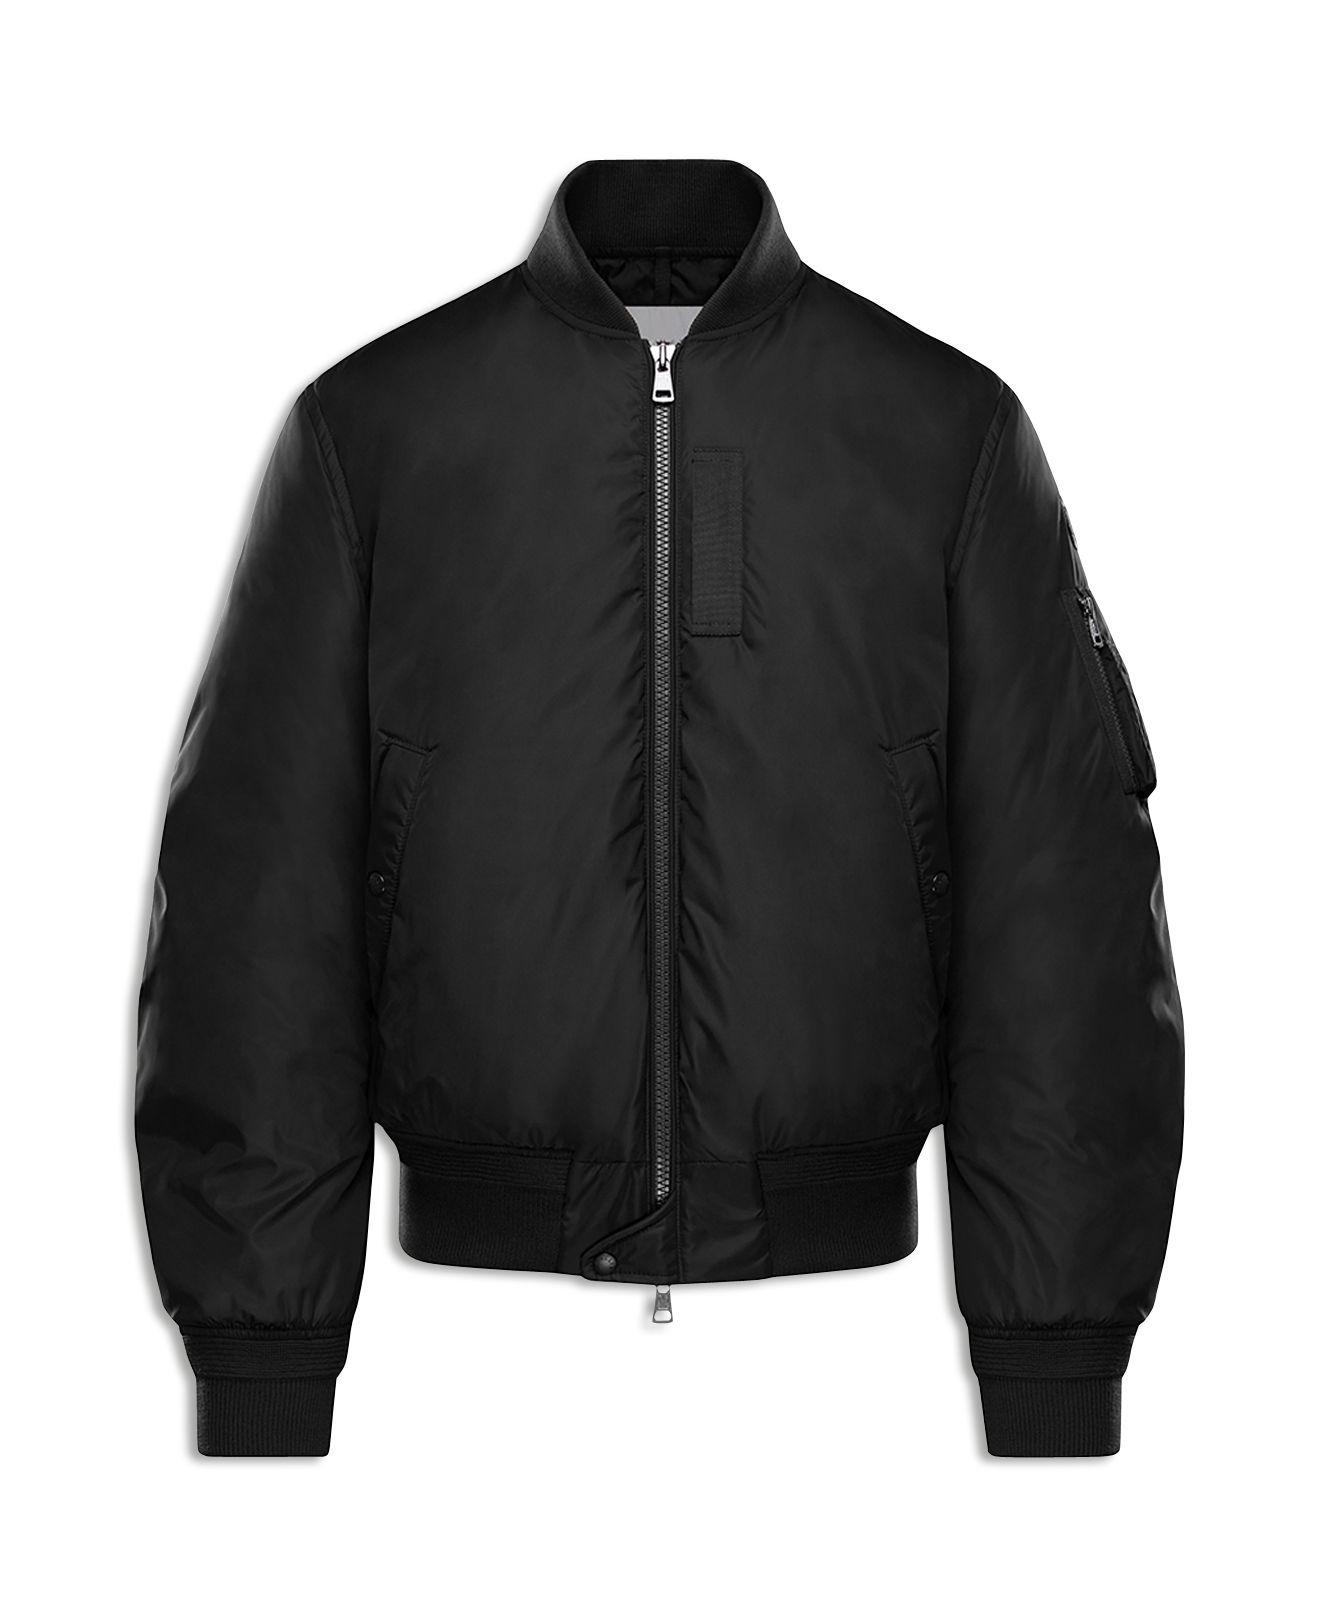 moncler amedeo sale